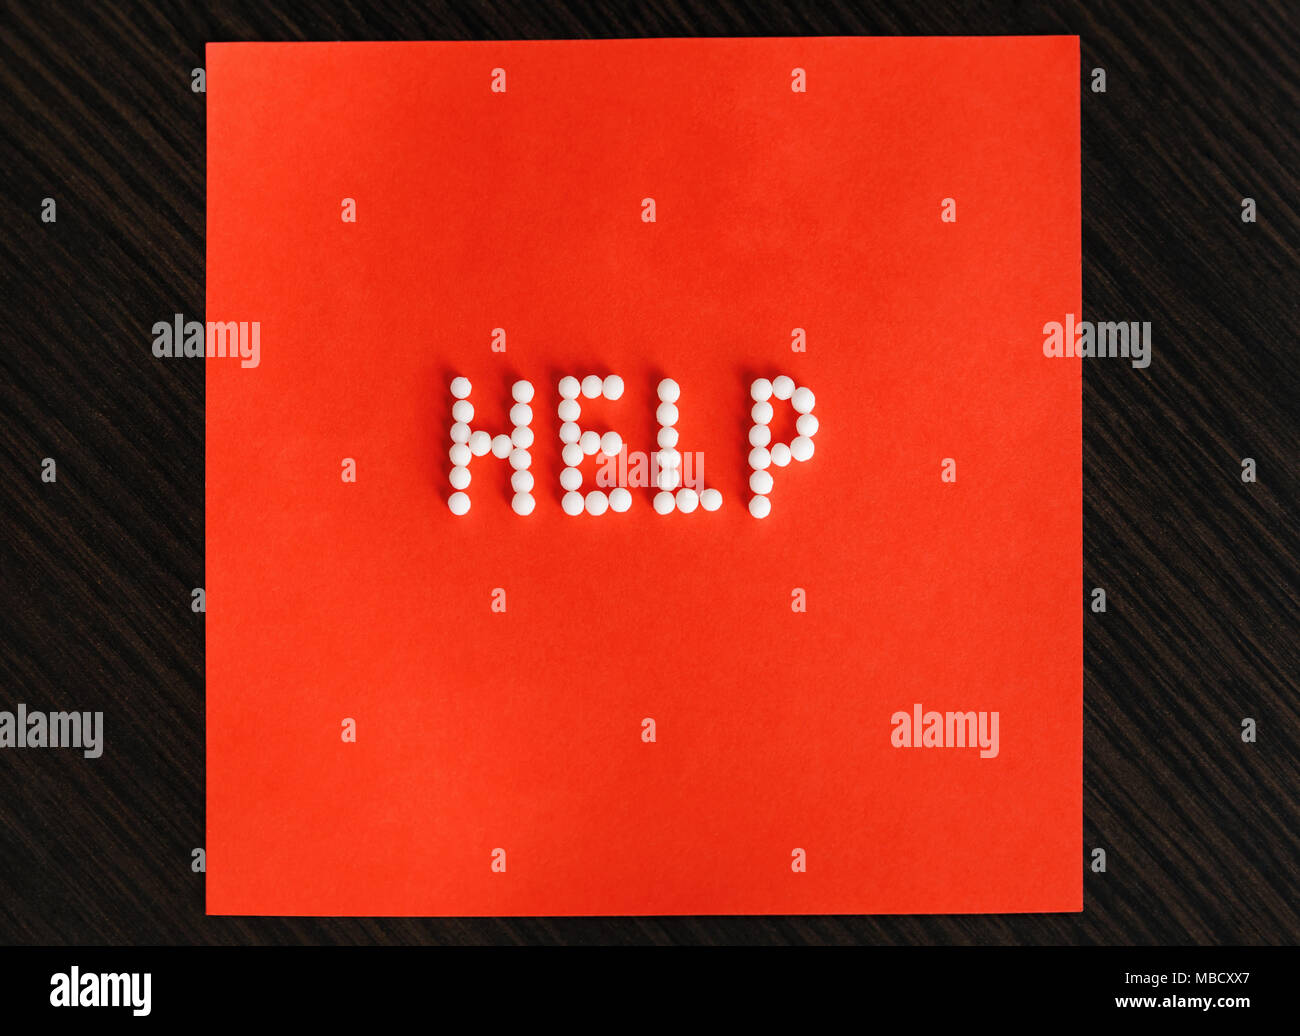 Help Homeopathy. The word 'help' set out with homeopathic balls on a red background. - Stock Image